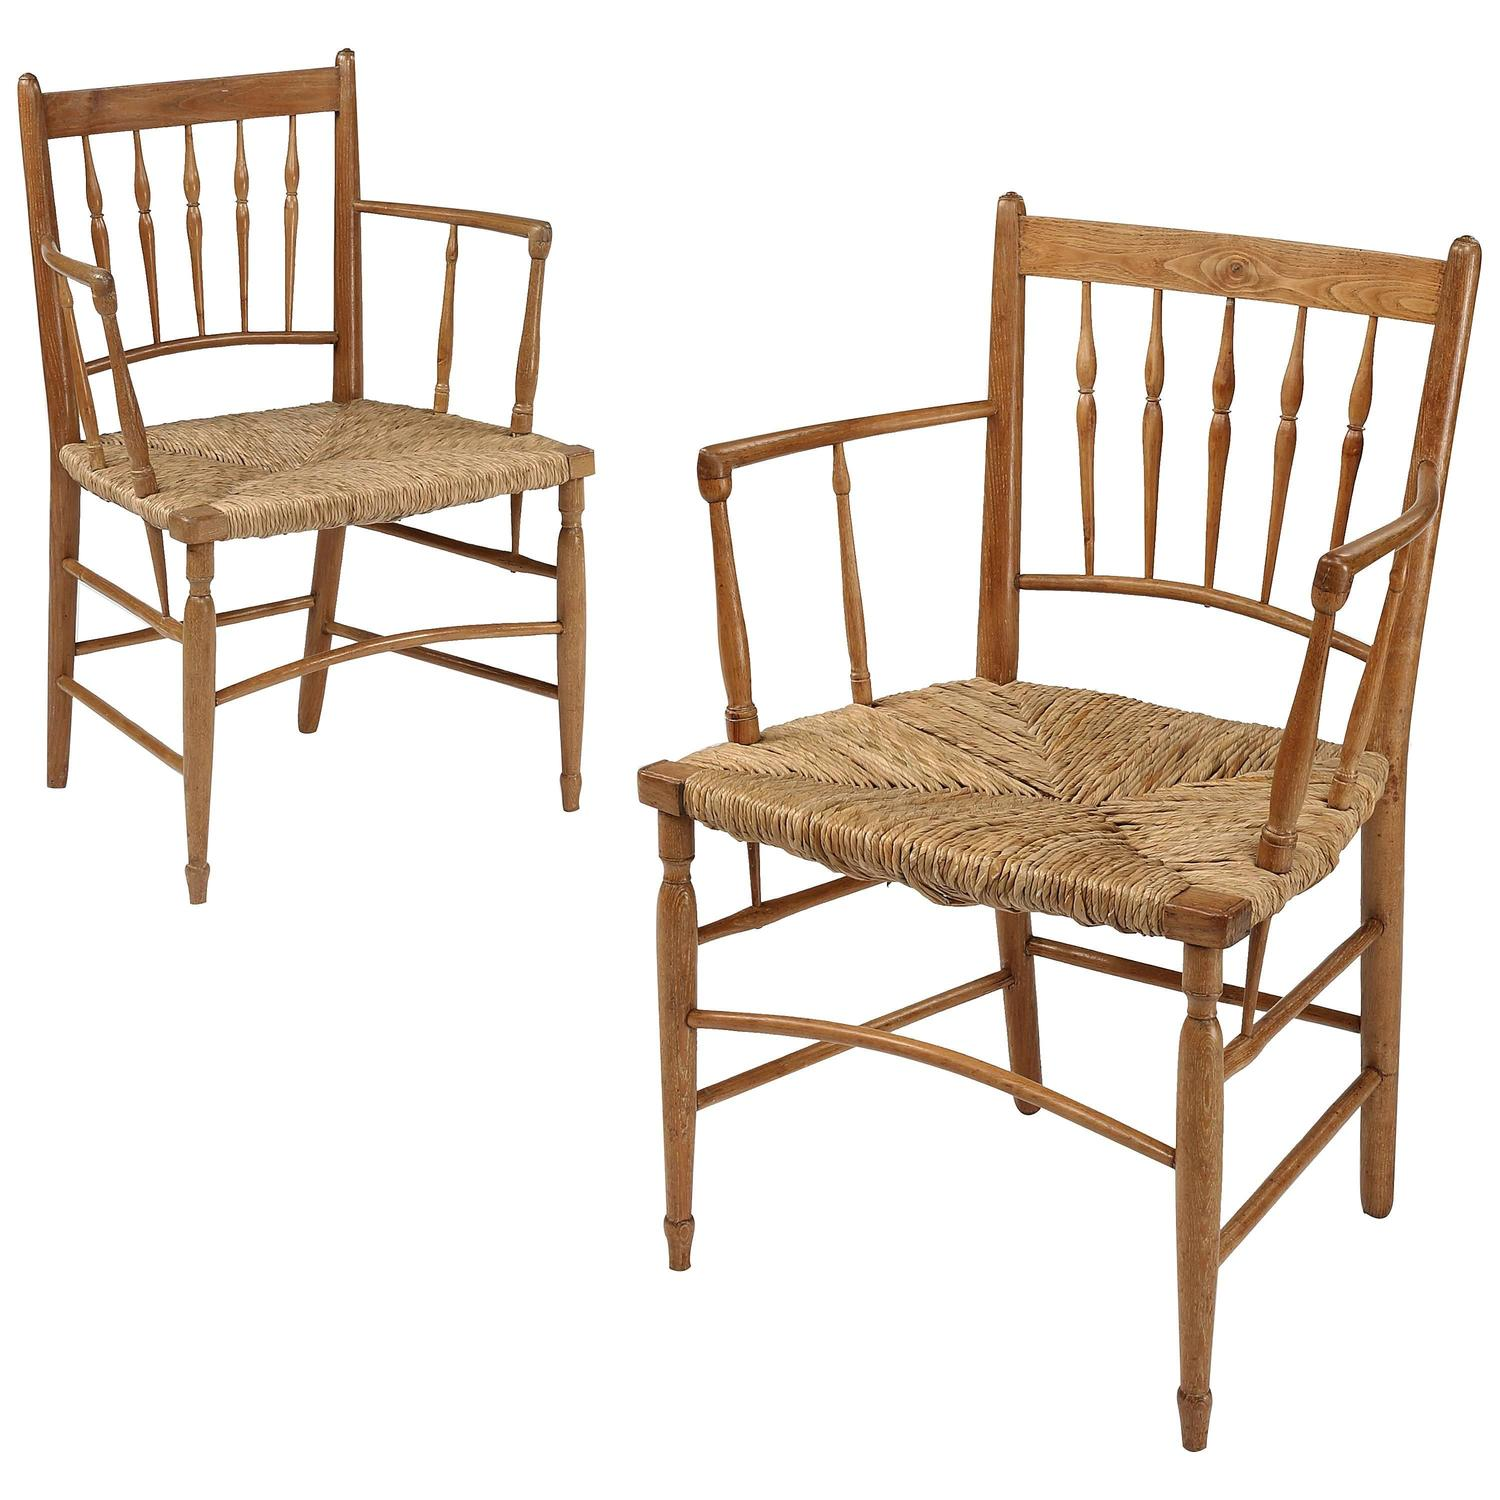 Pair of Oak Spindle Back Sus Chairs after a Design by William